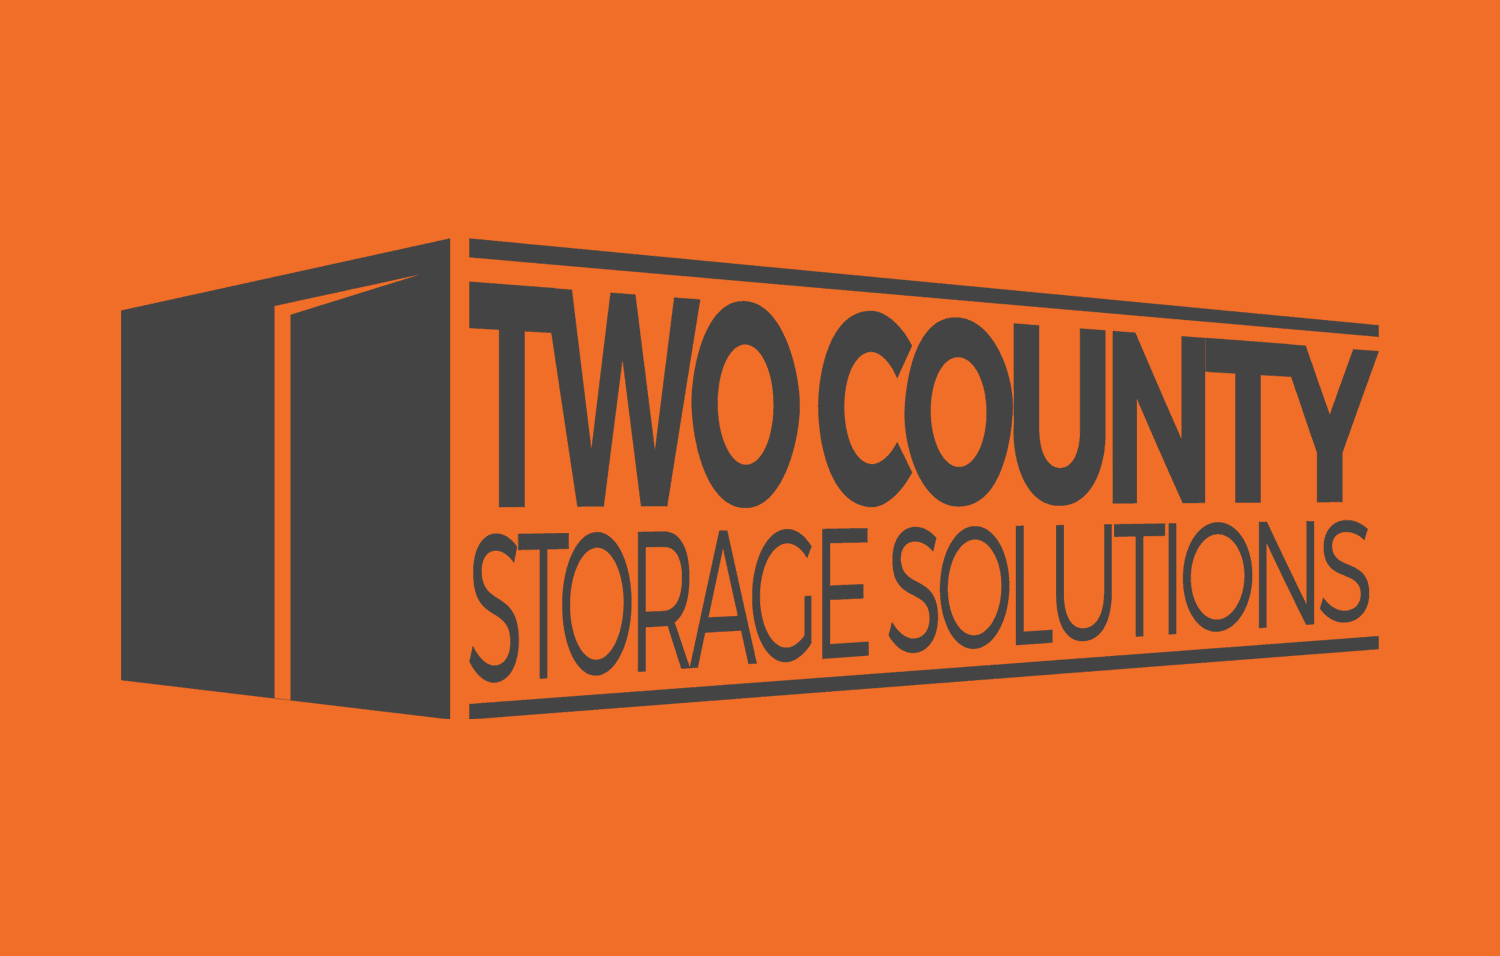 Two County Storage